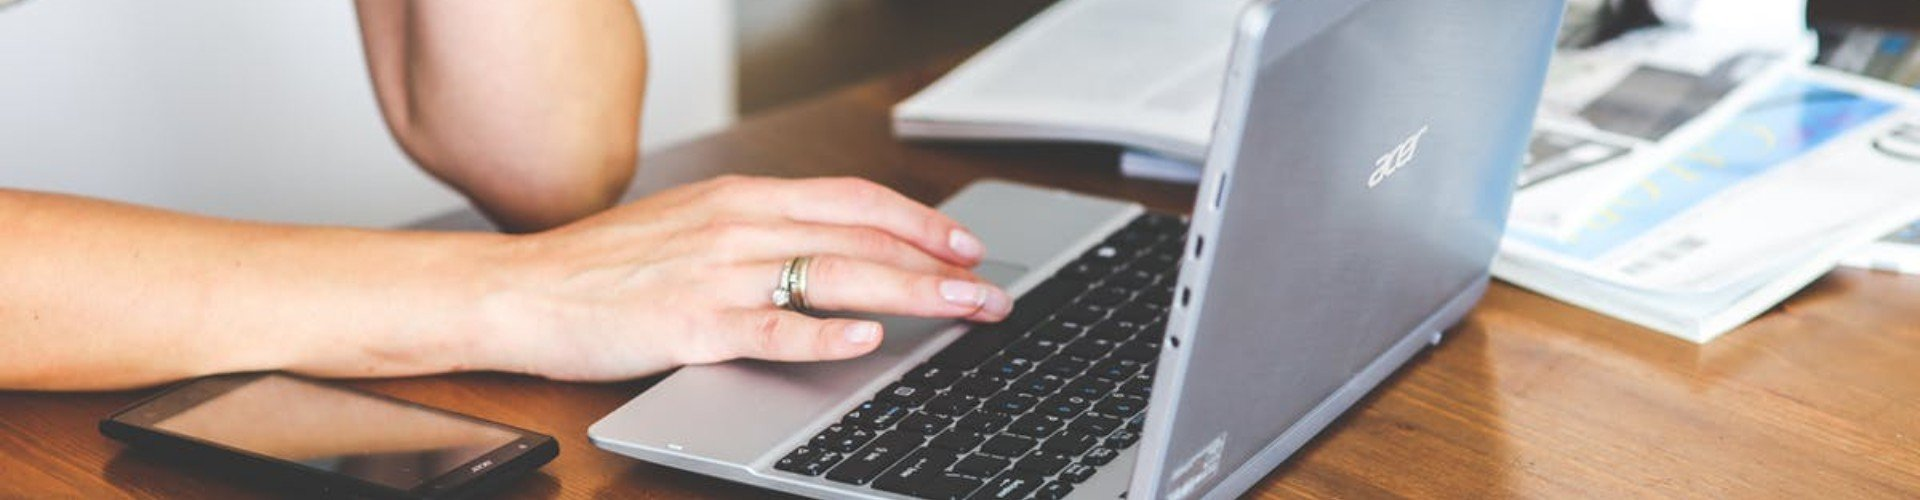 Best Online Courses and Certifications for Professionals